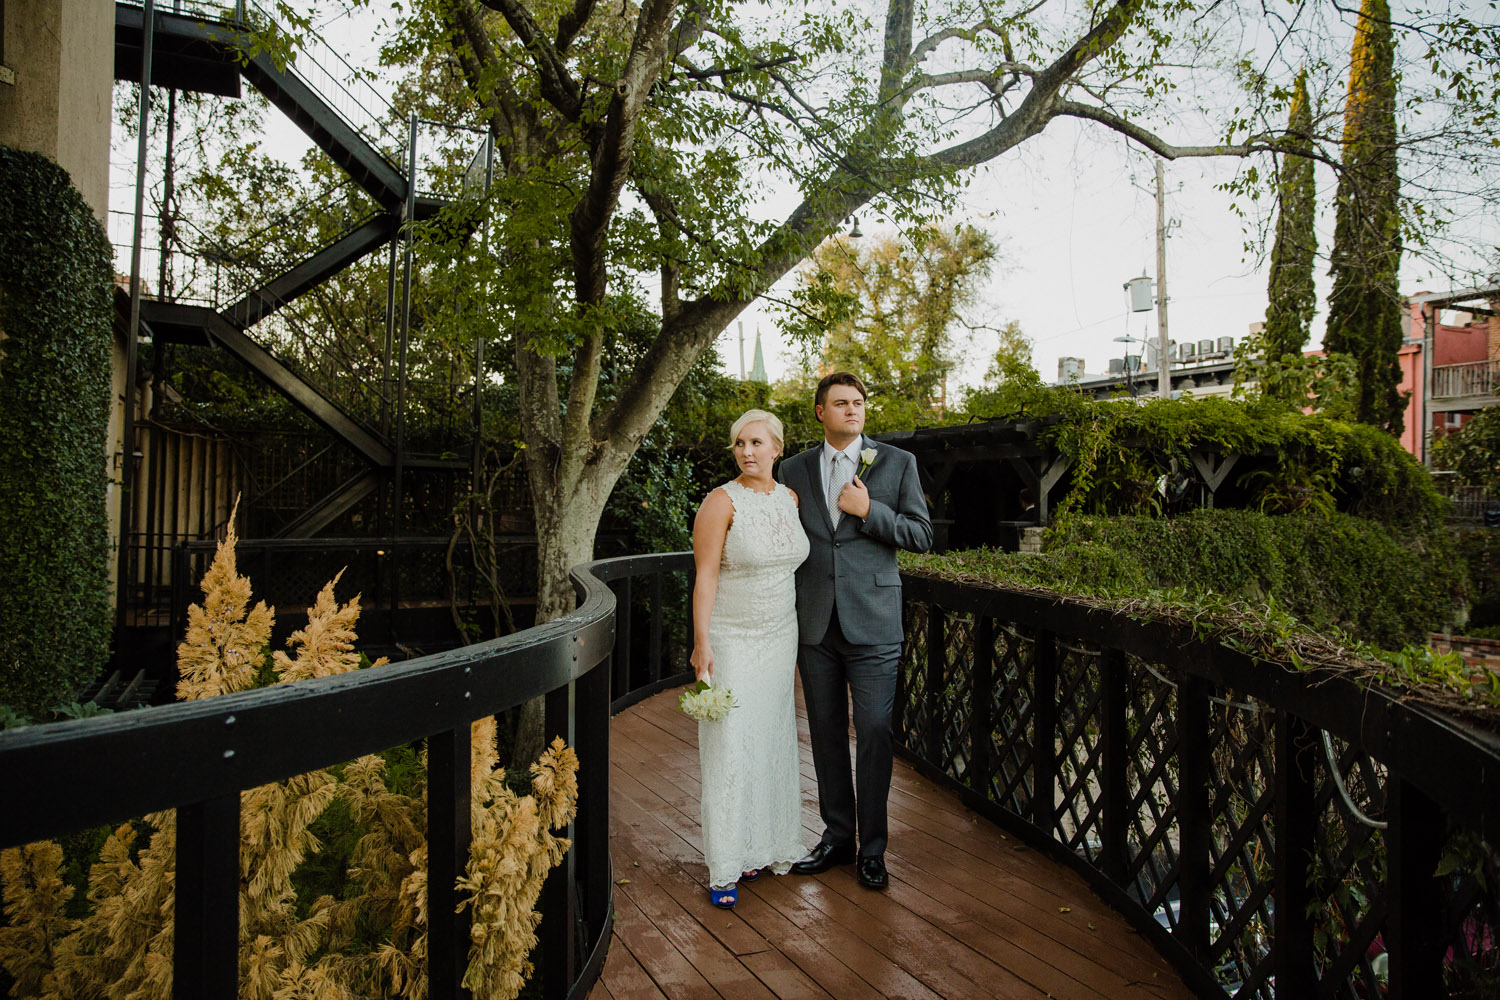 Atlanta Wedding Photographers Savannah Elopement Photographer Destination Photography_1039.jpg